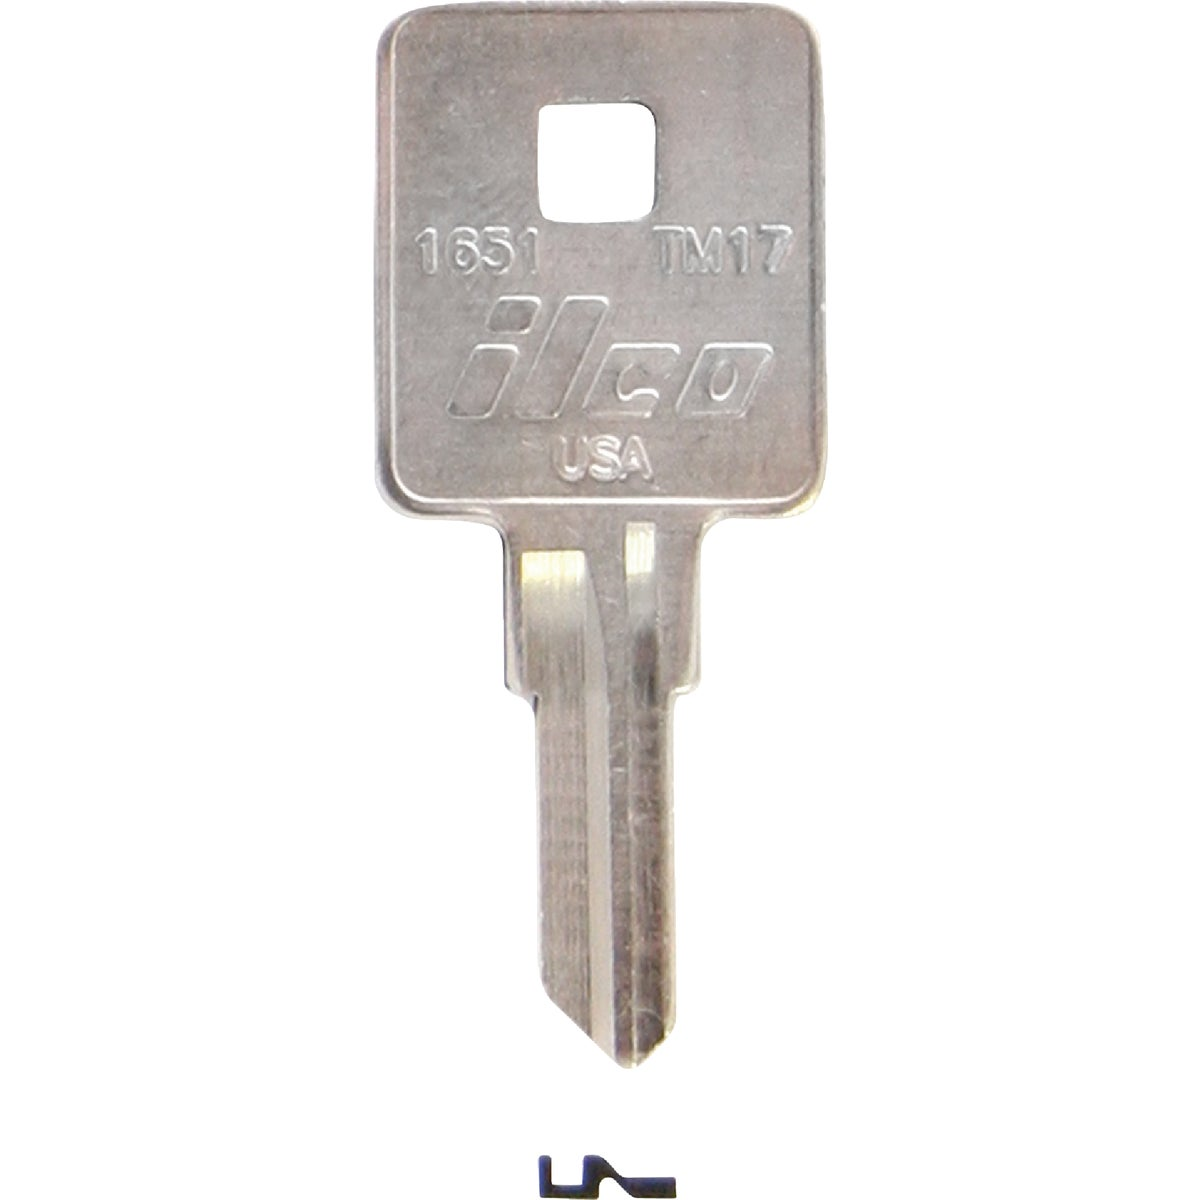 TM17 TRIMRK TRUCK BX KEY - 1651 by Ilco Corp